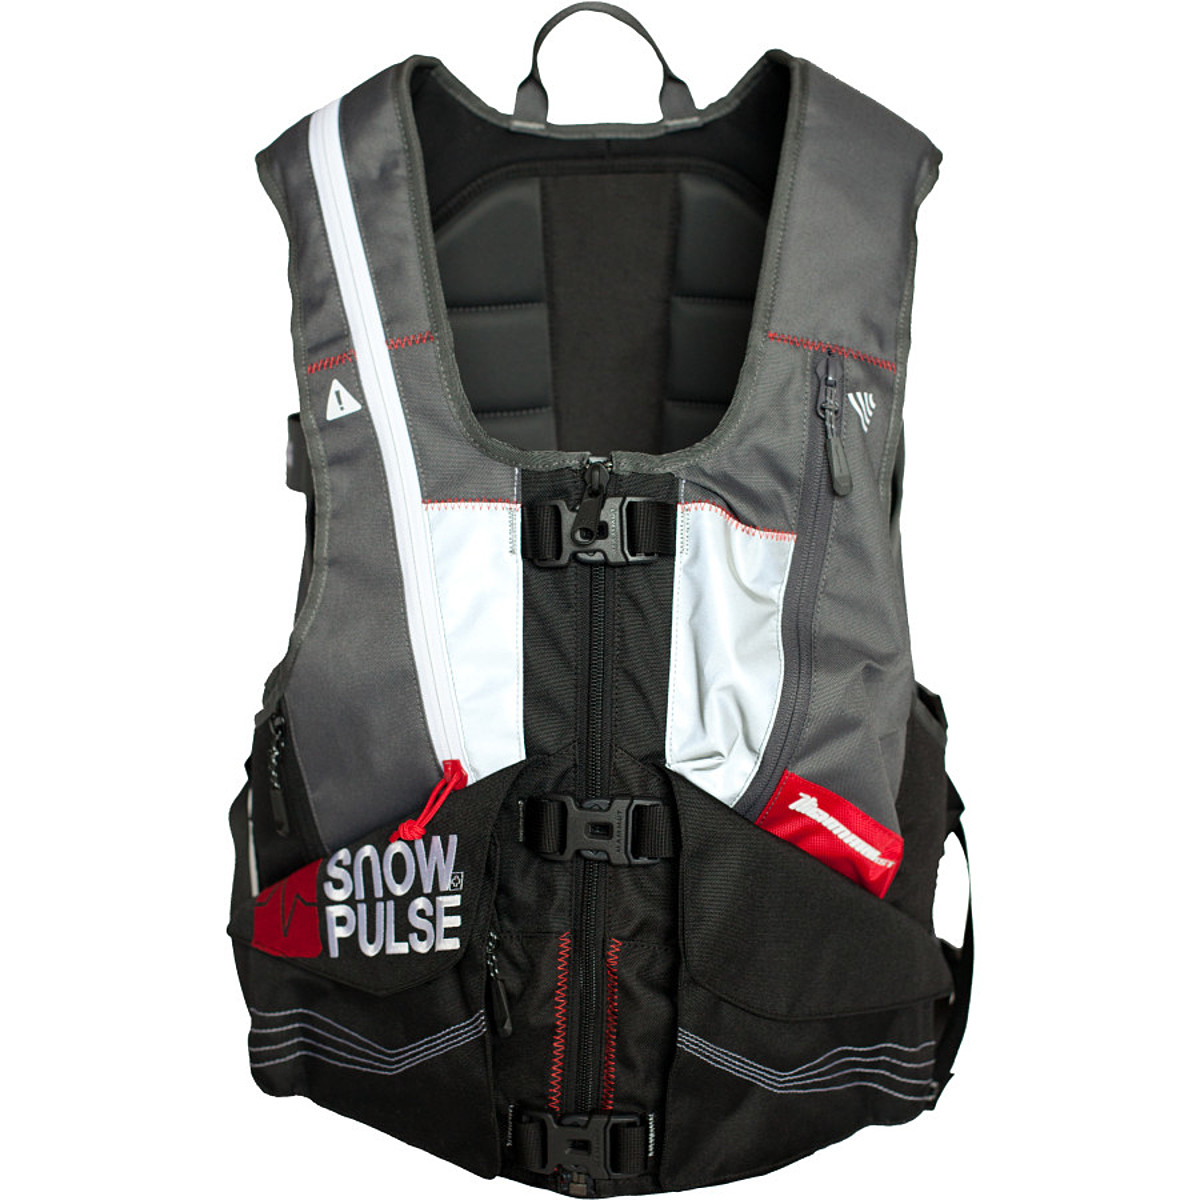 Snowpulse Highmark RAS Airbag Vest